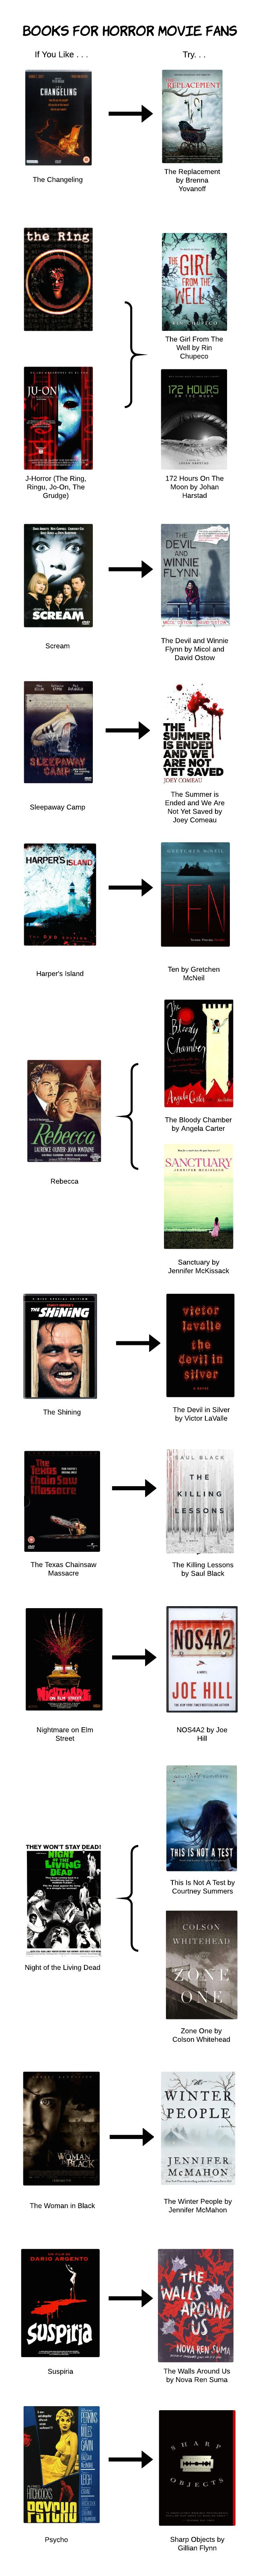 Book Recommendations based on your favorite horror movies.